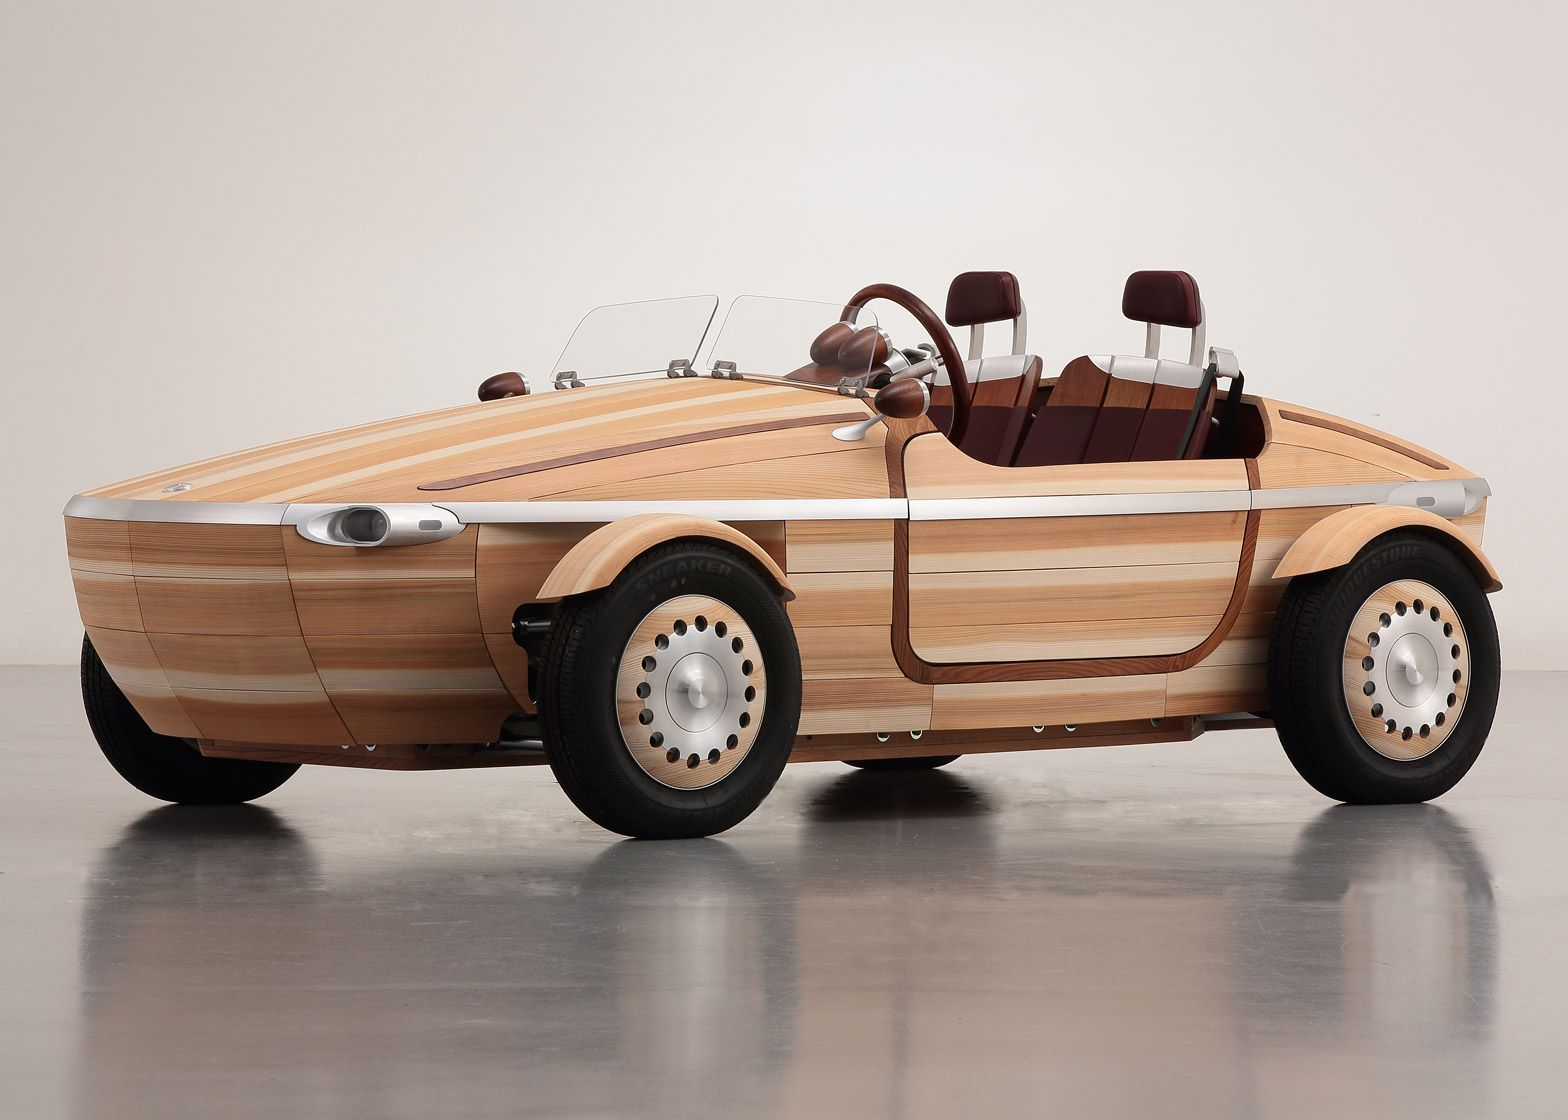 Toyota has created an open-top two-seater car made out of wood to ...